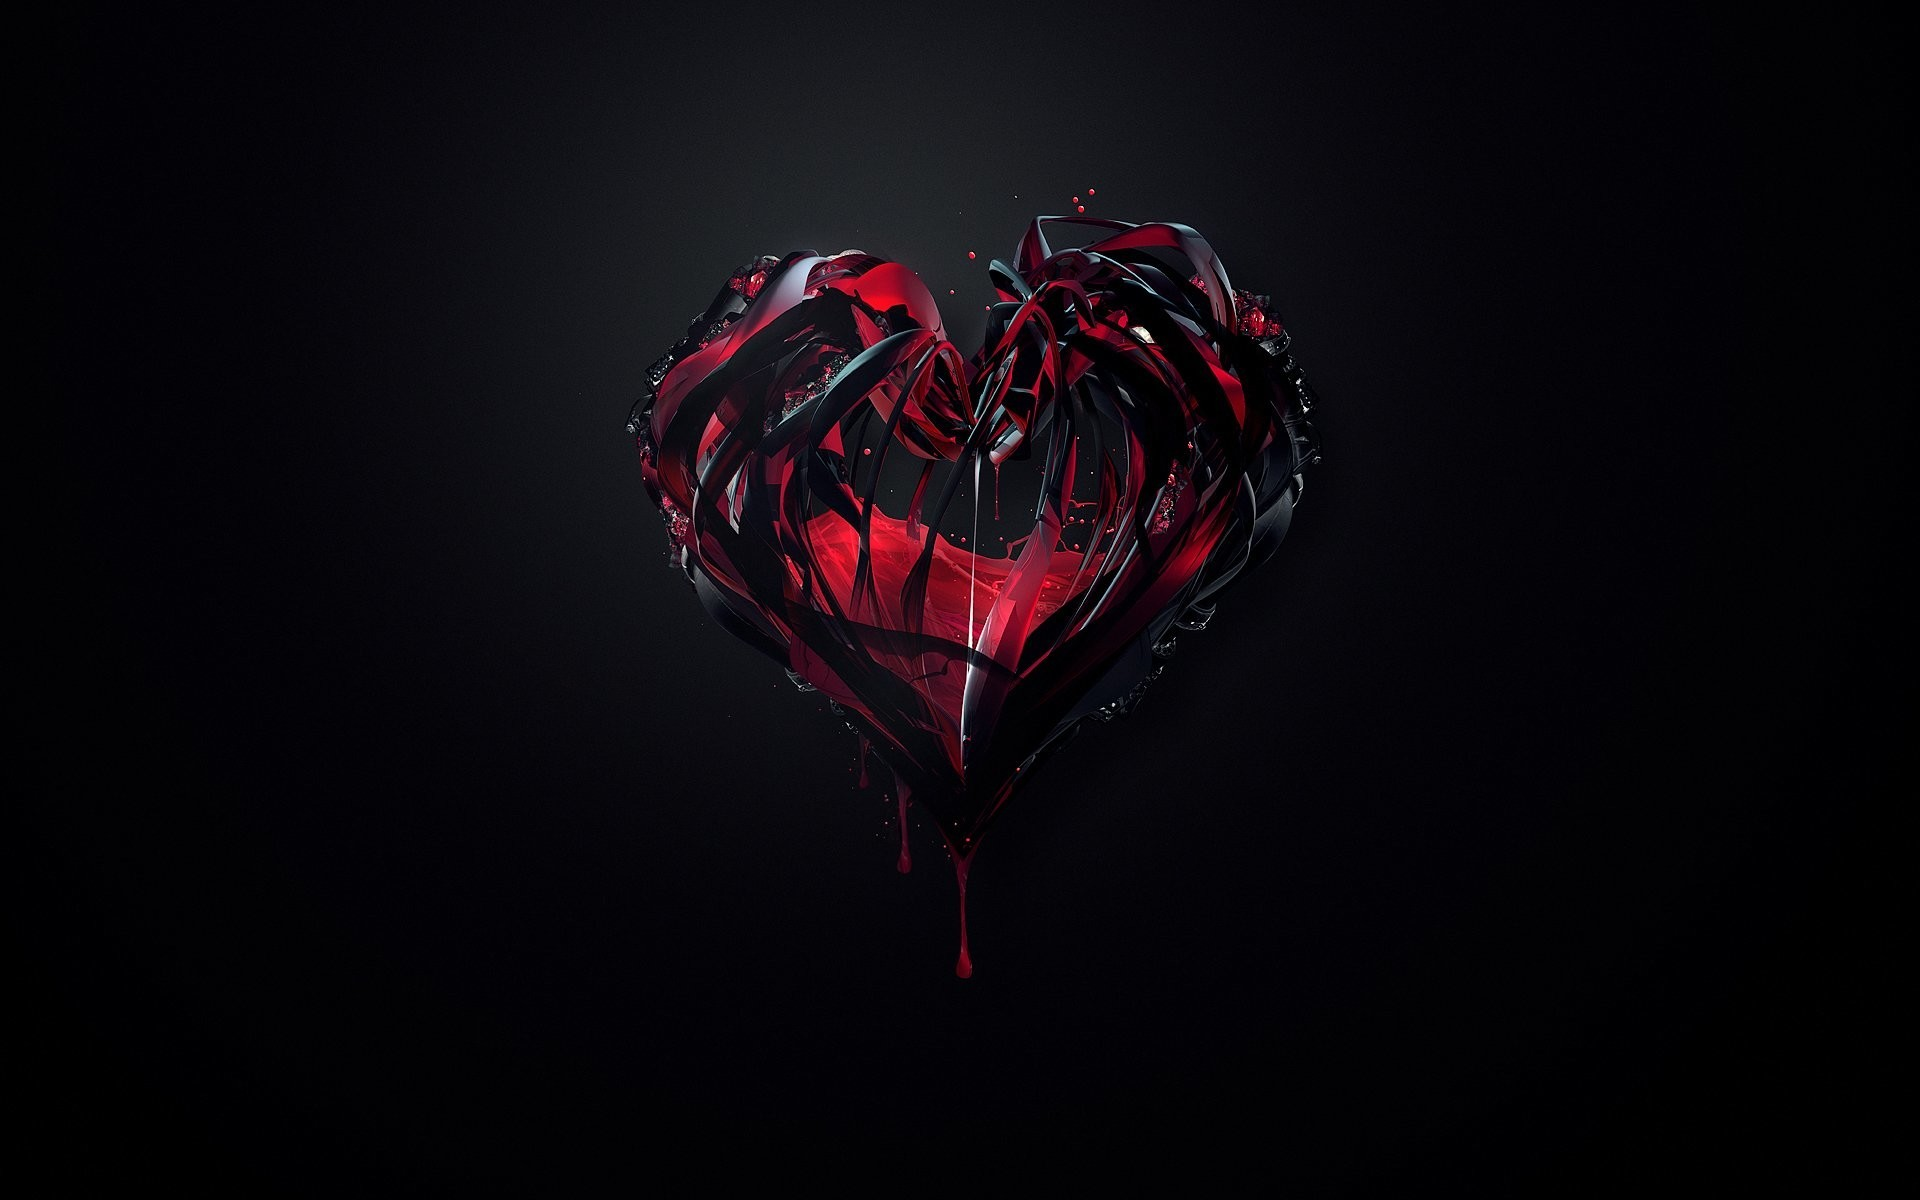 1920x1200 Black And Red Love Abstract Wallpaper HD Widescreen Freeknlknlknlknlknlknkln